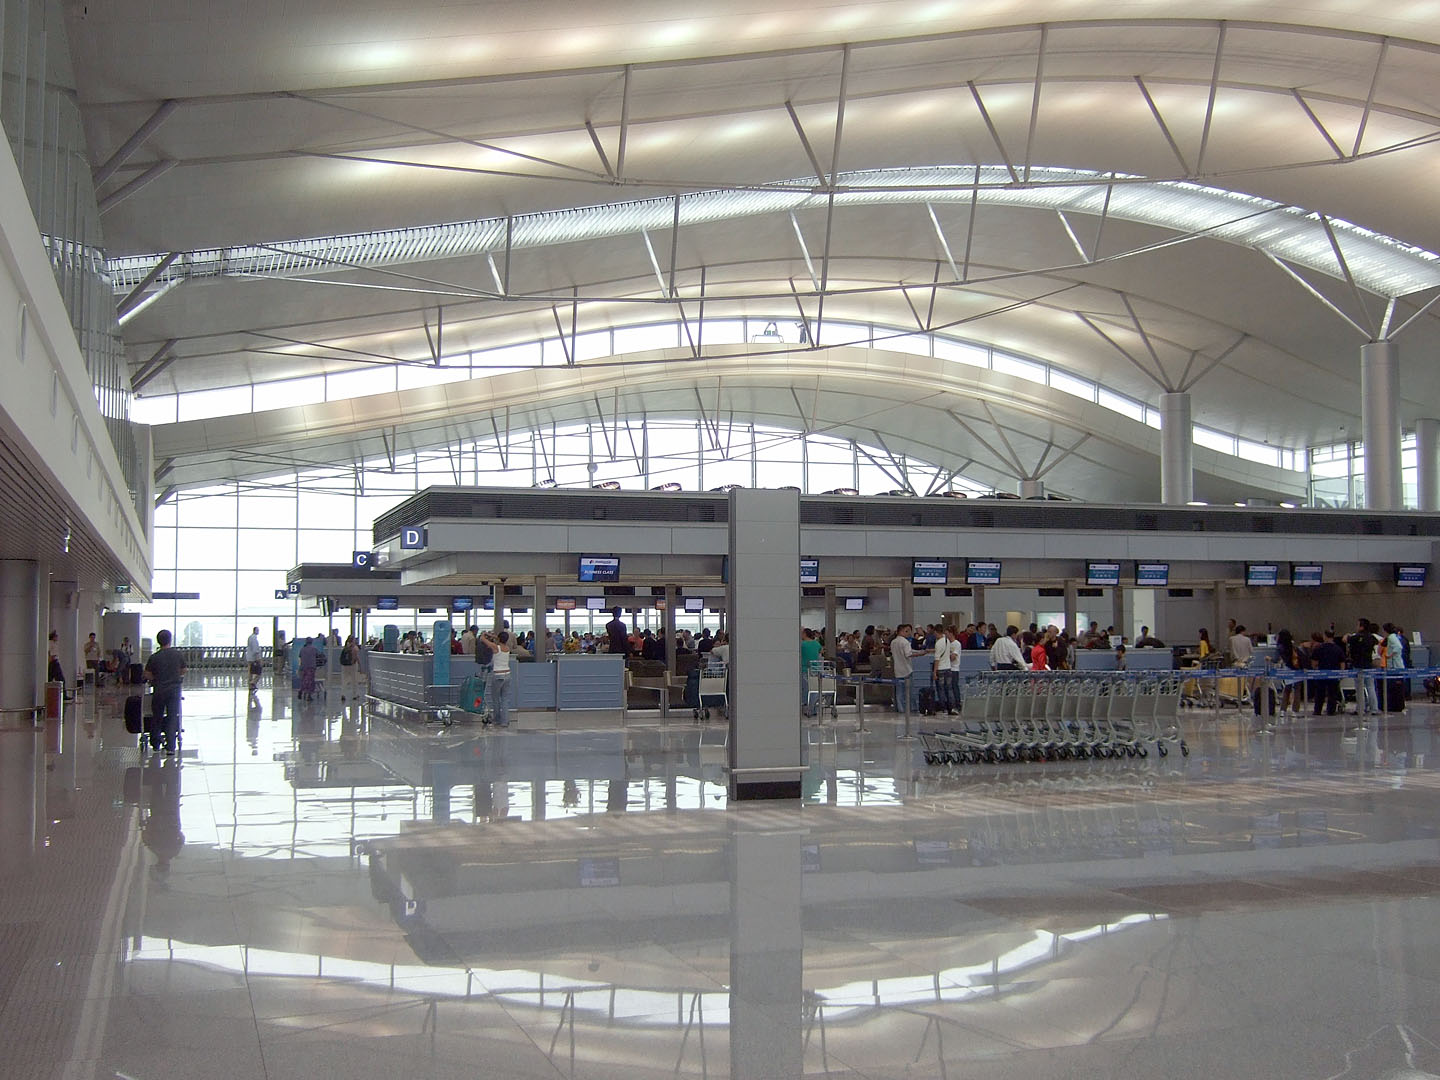 Image of the ticket counters at the Tan Son Nhat International Airport in Vietnam